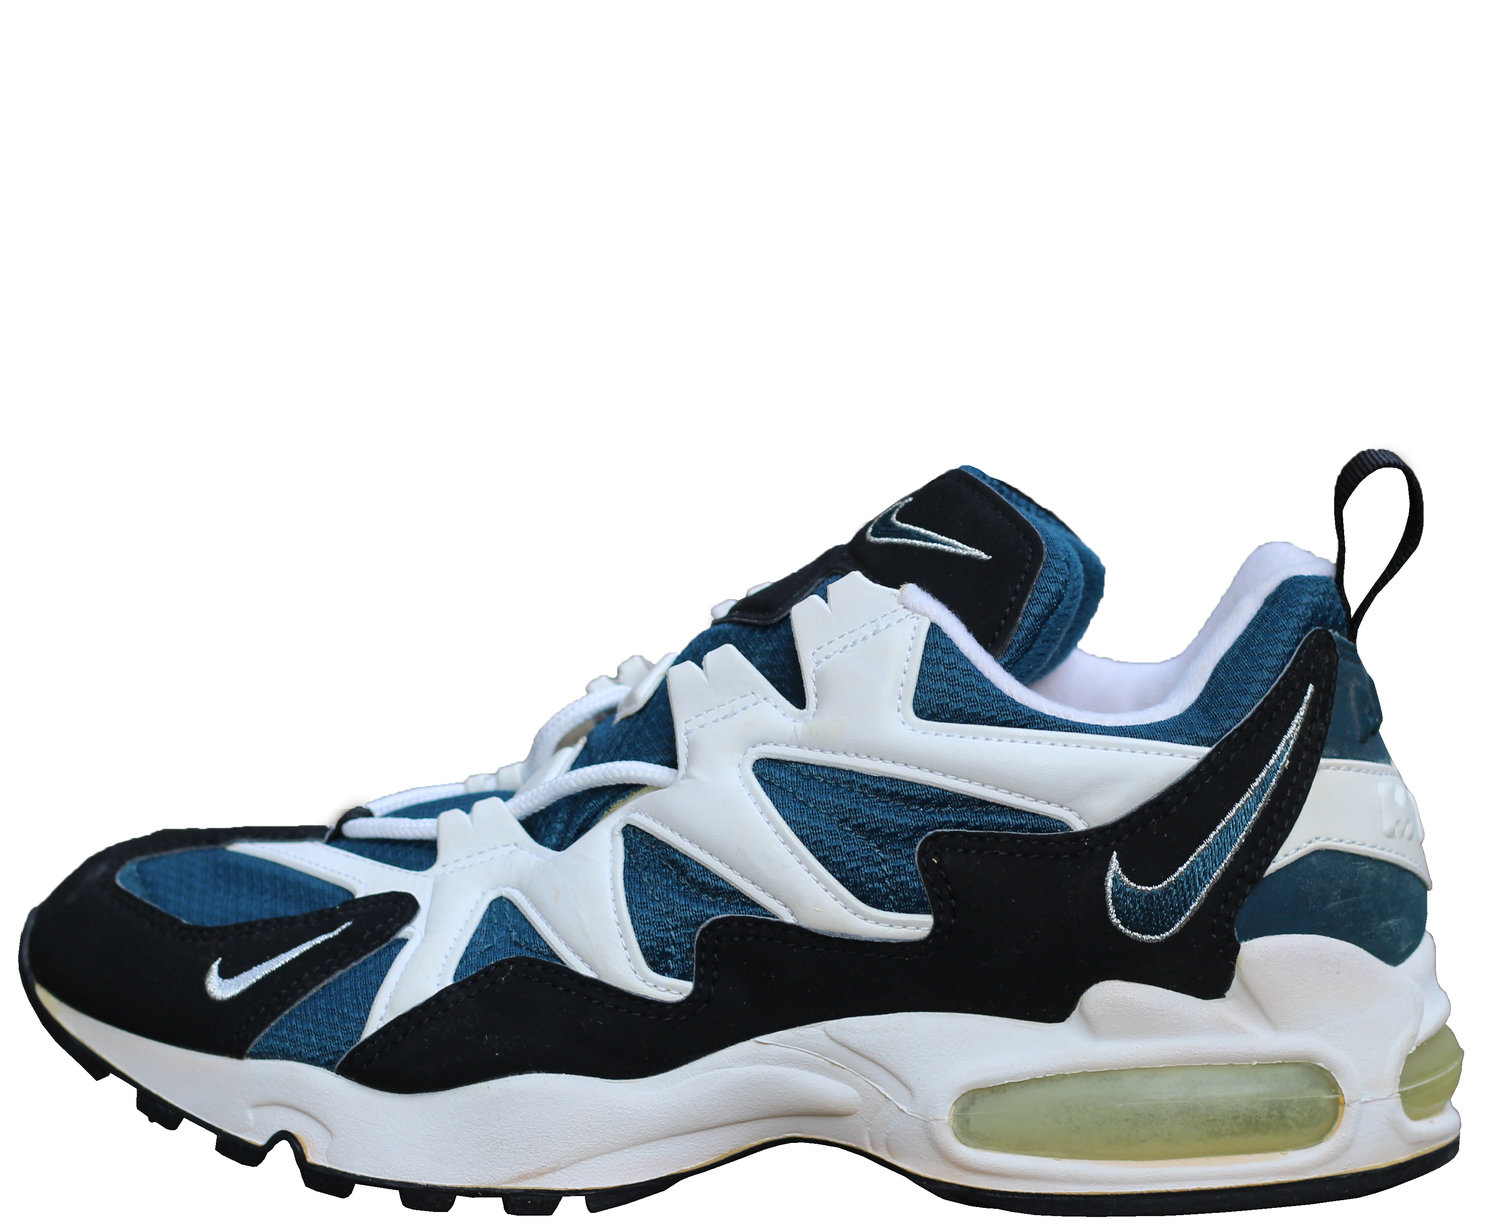 Nike Air Max Tailwind 1996 Nightshade (Size 11) DS — Roots